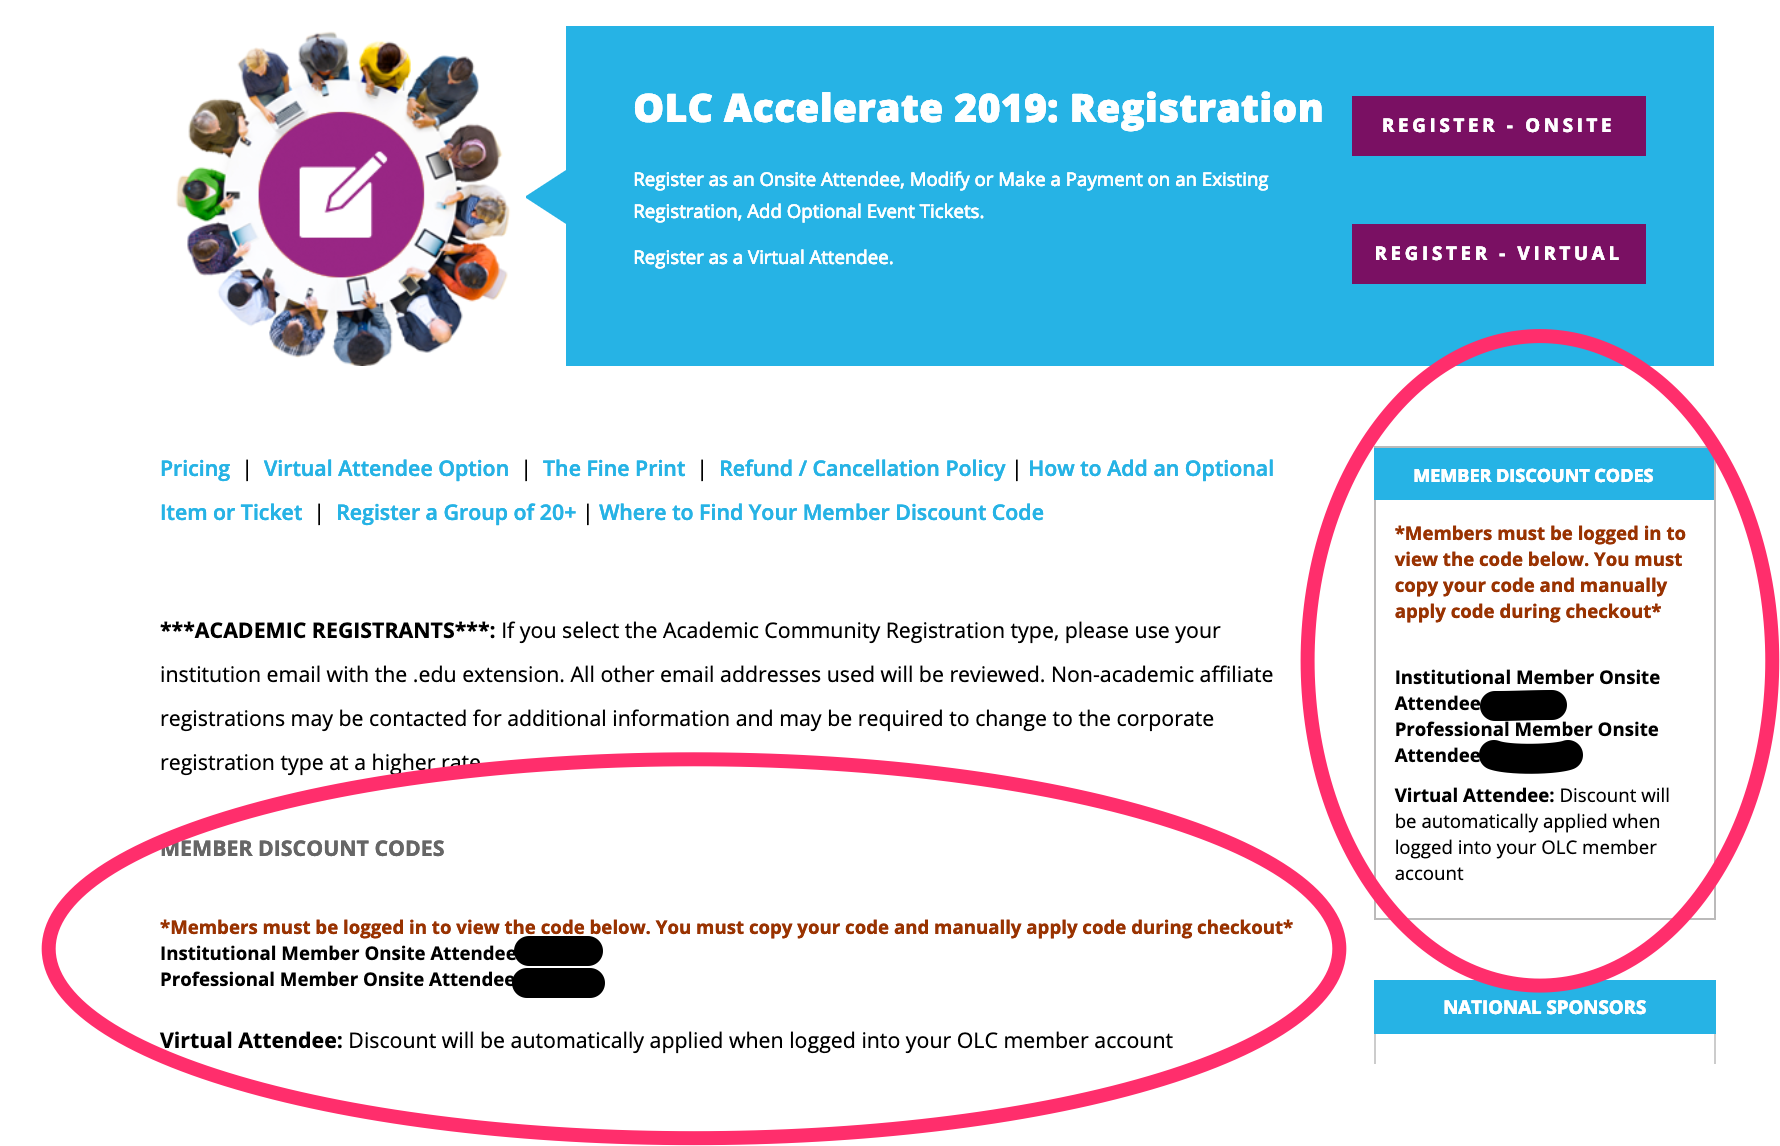 OLC Accelerate 2019 - Member Discount Code Location